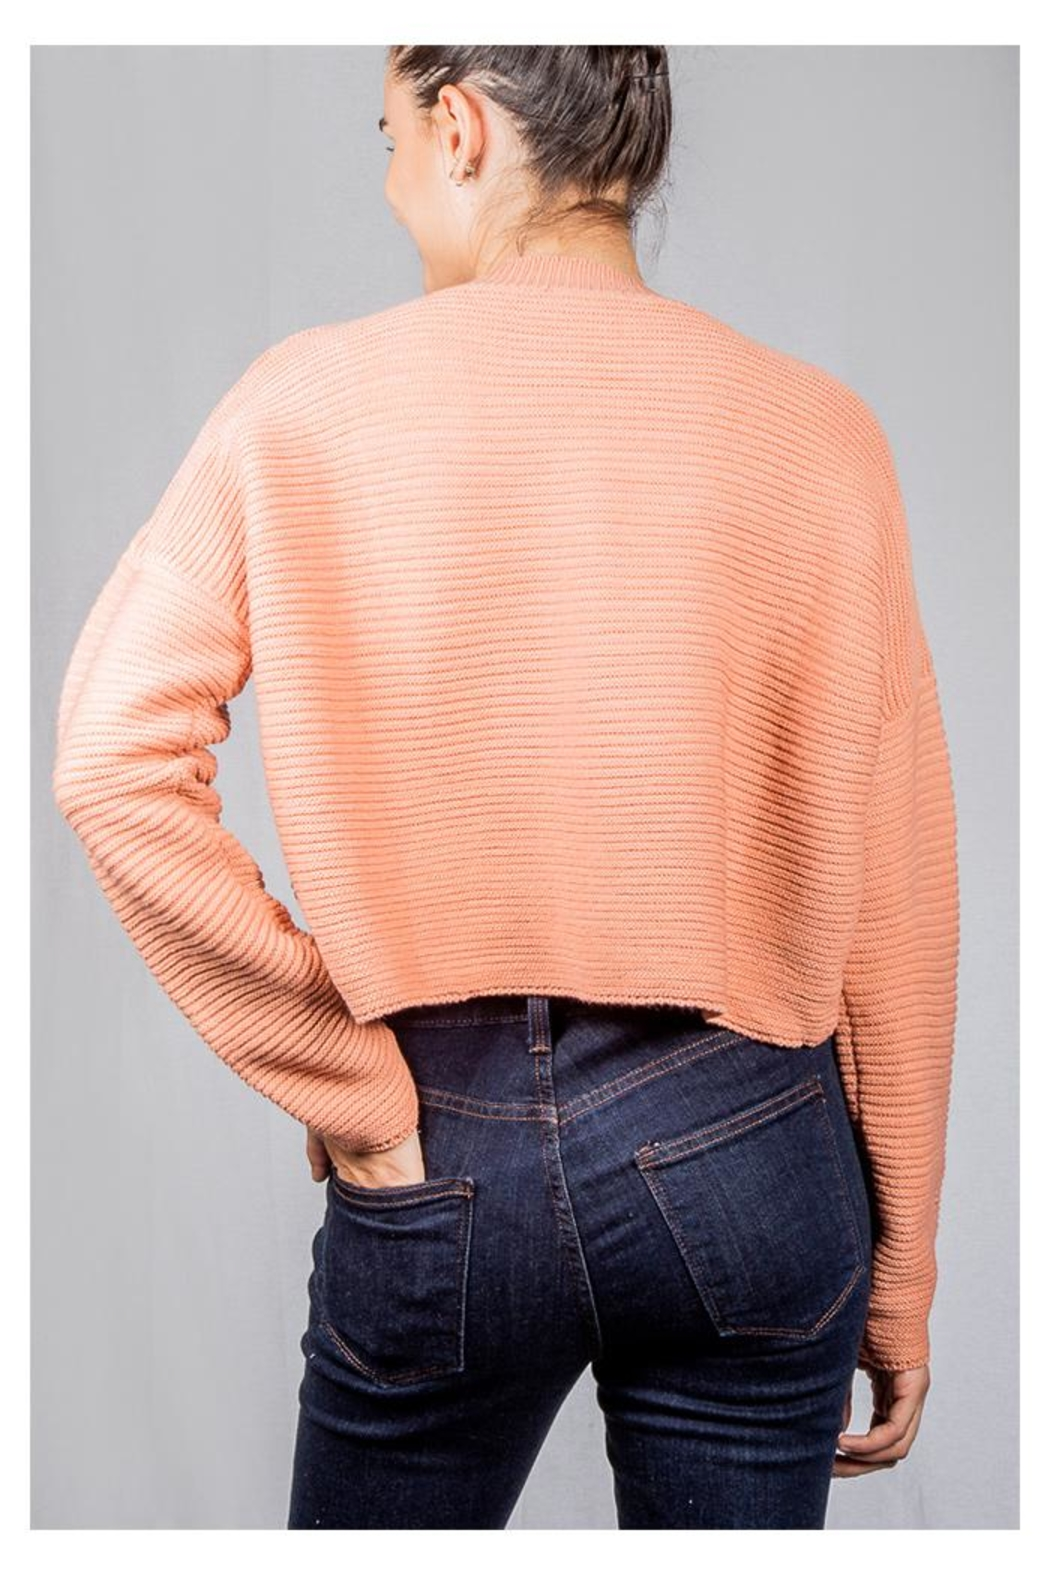 Audrey 3+1 Bubblegum Ribbed Sweater - Back Cropped Image